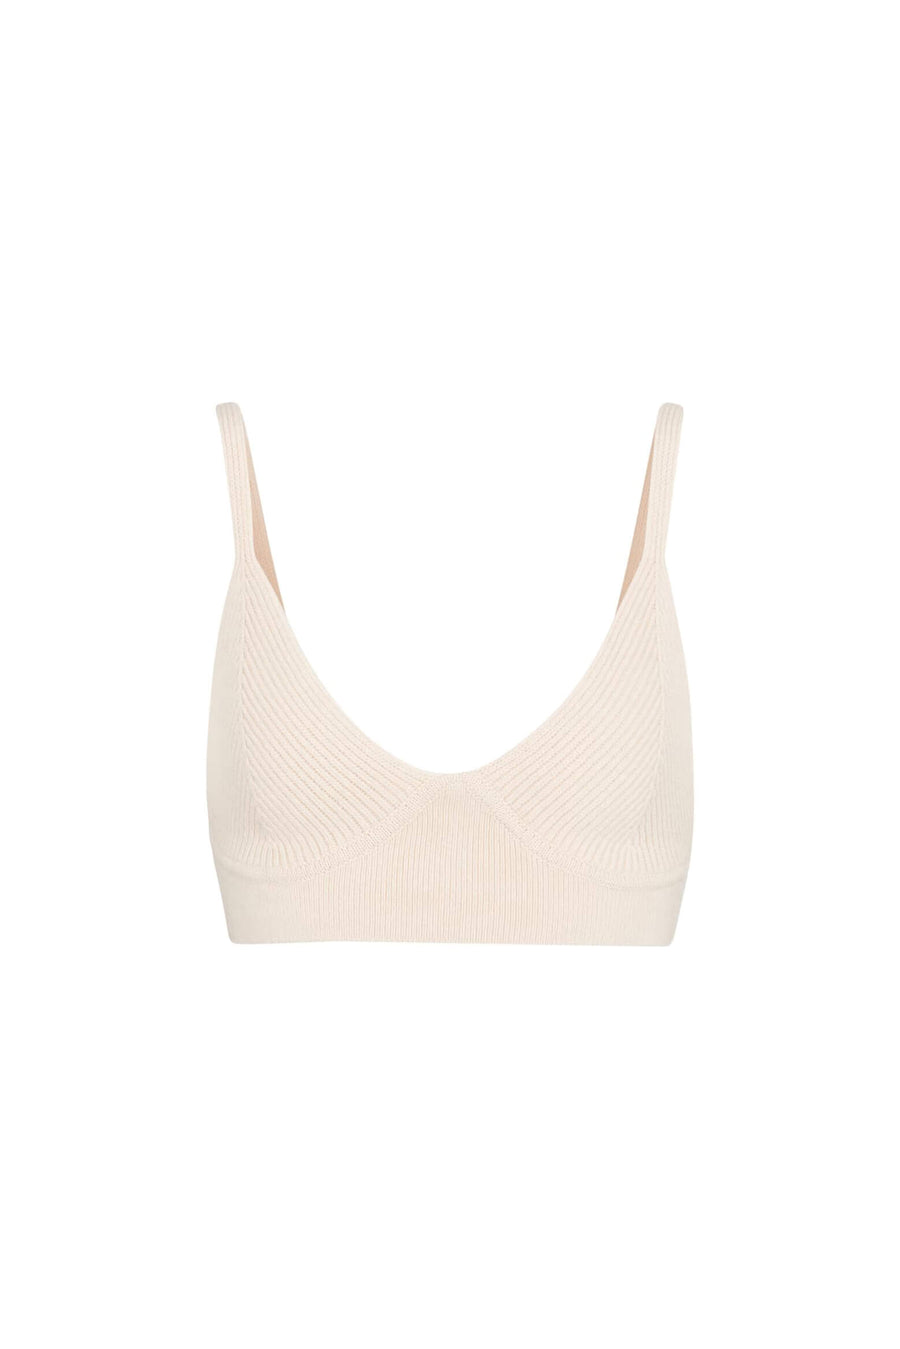 Jonathan Simkhai Aeris Loungewear Bra in Ecru from The New Trend